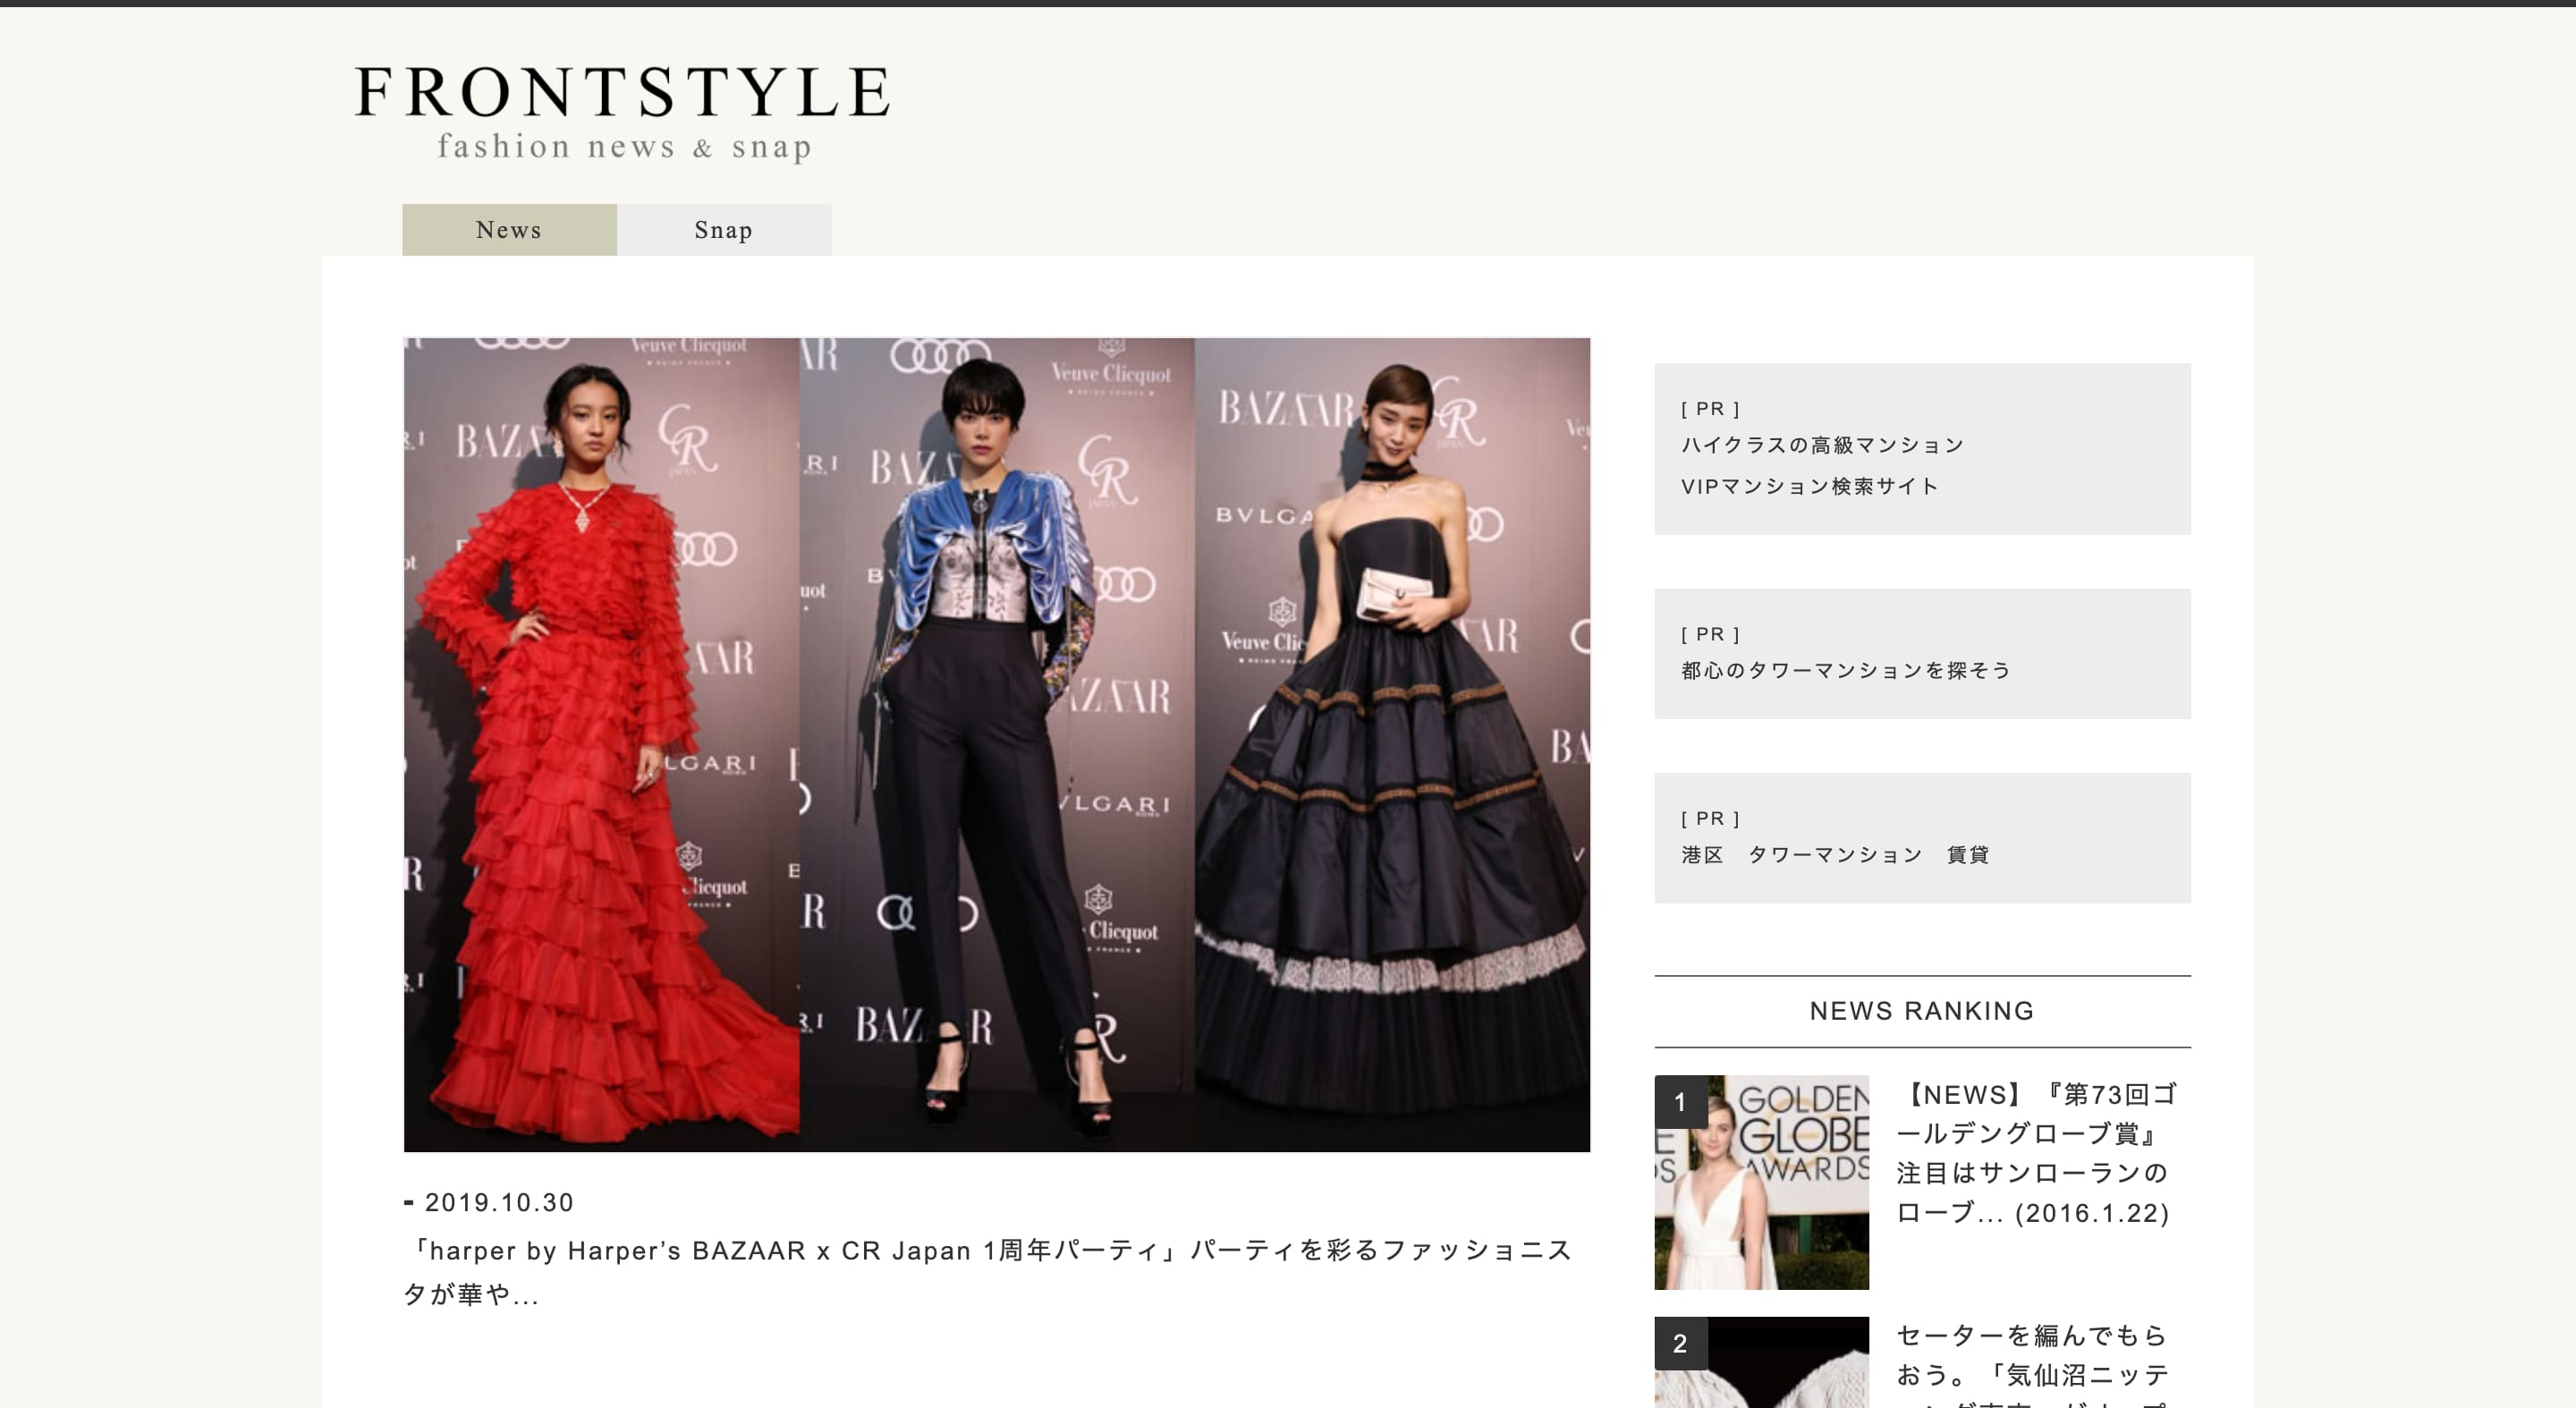 FRONTSTYLE FASHION NEWS SNAP